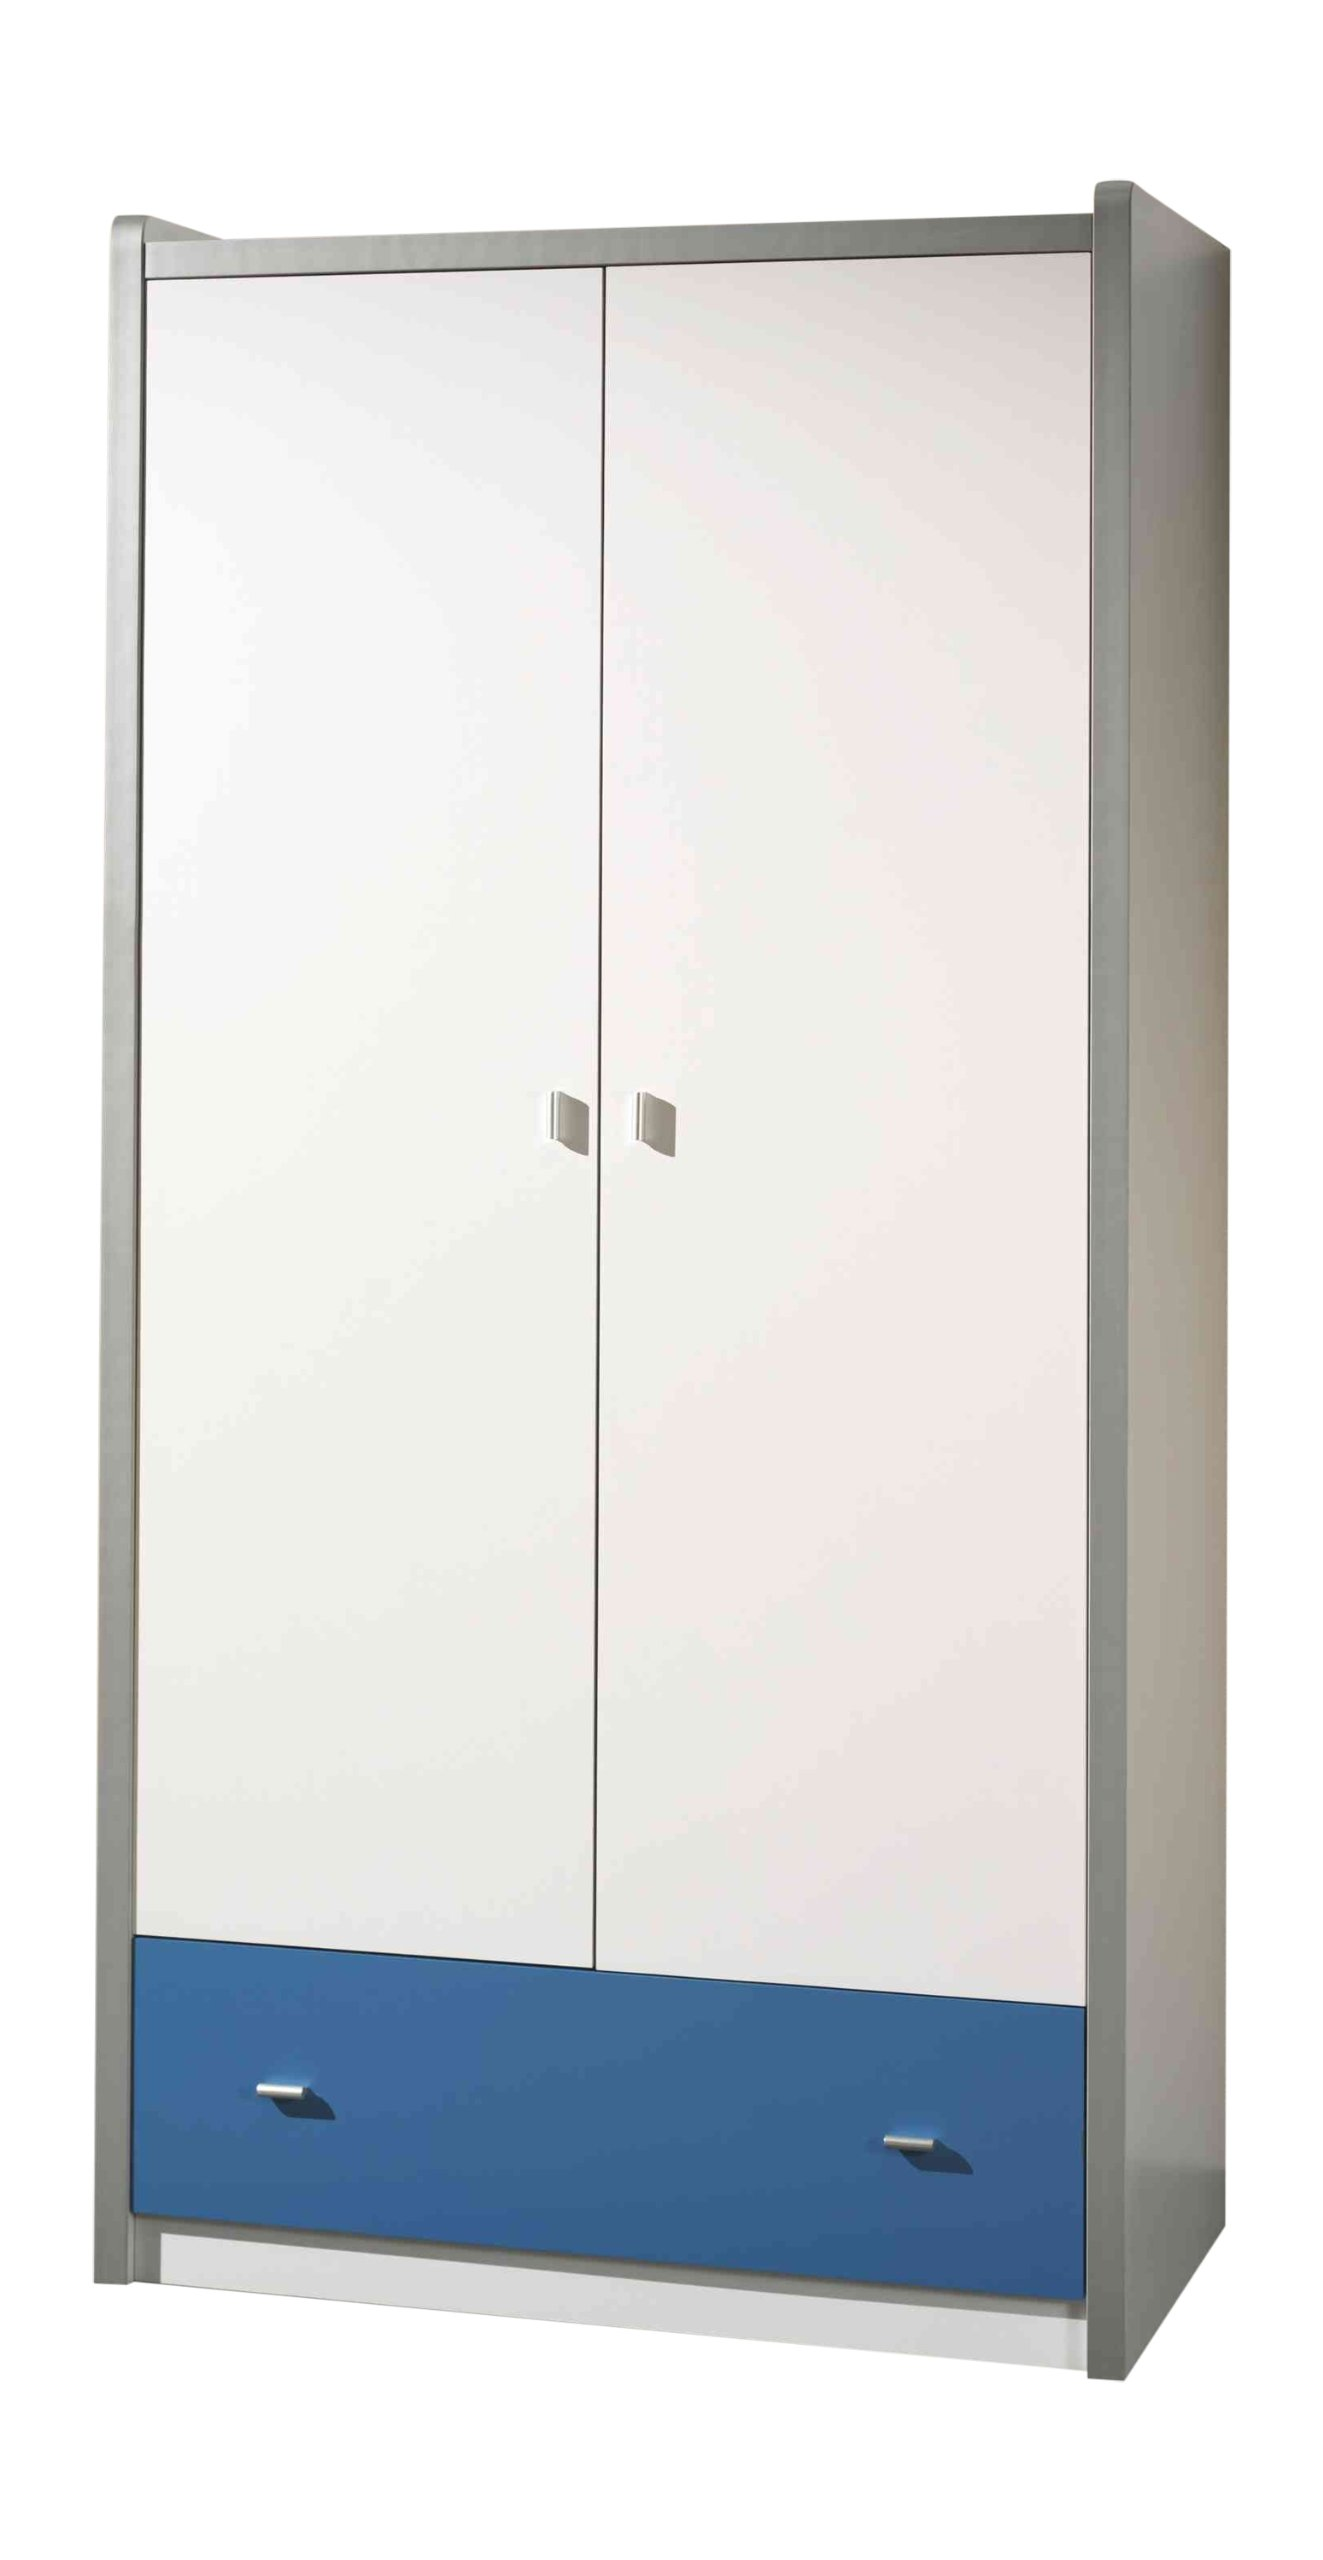 Vipack Bunk bokl2207Bonny/MDF Cabinet with 2Doors Particle Board Blue 201X 110X 59cm Vipack Bonny Collection Manufacturer's warranty: 1year (S) Material: MDF/Particle Board 1